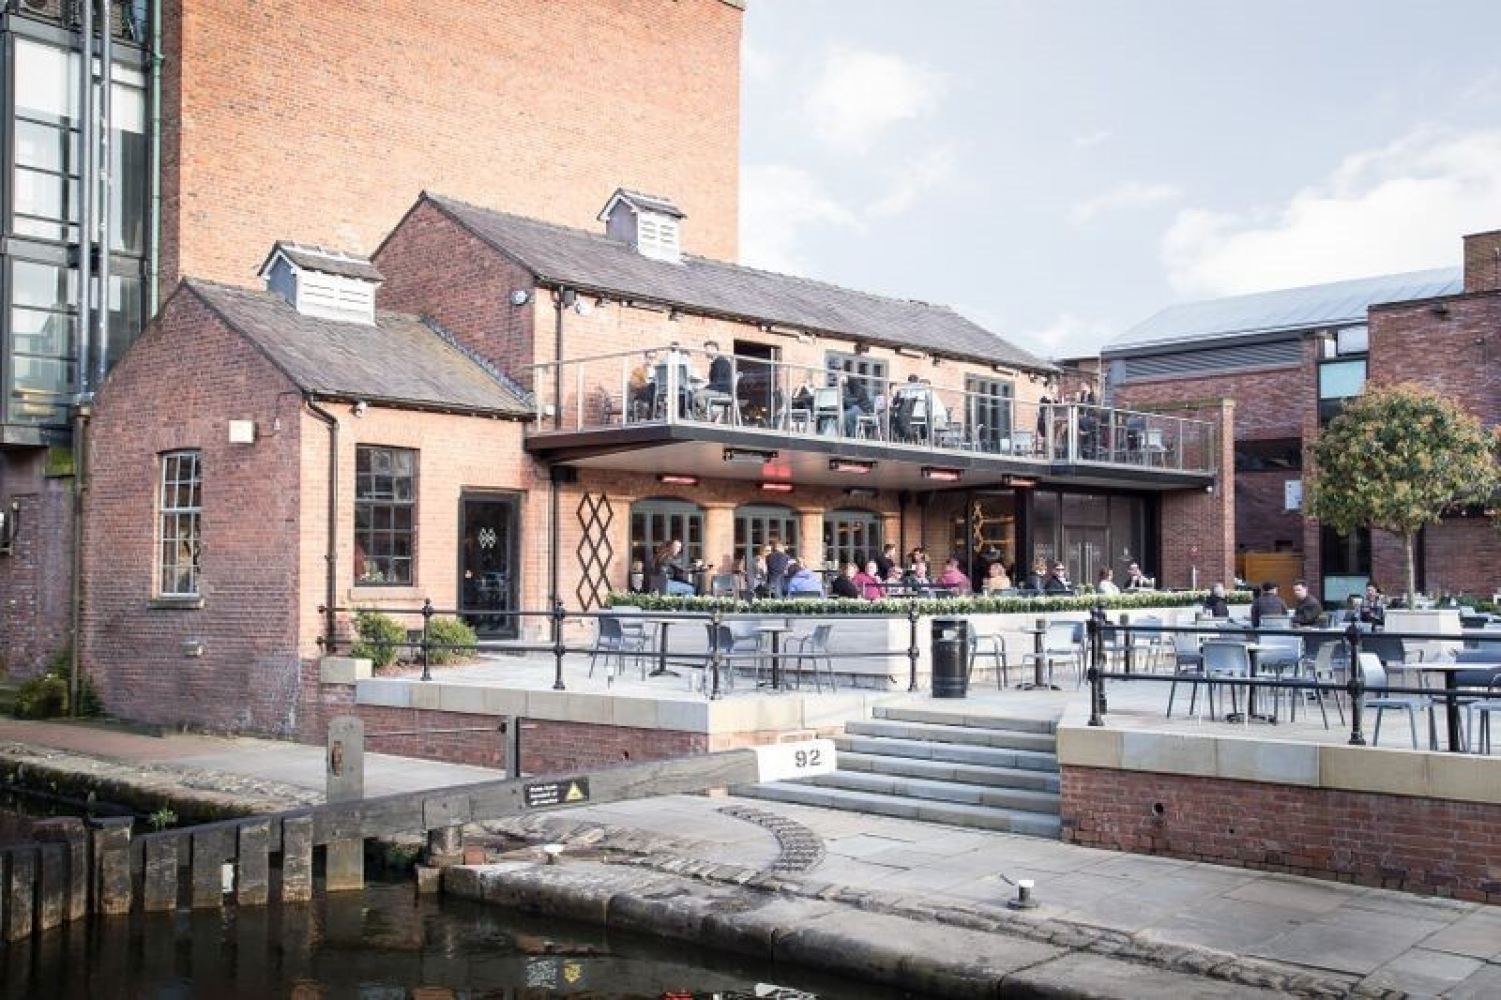 170511 Manchester Outdoor Drinking Terraces Dukes 92 Fjhdjd666